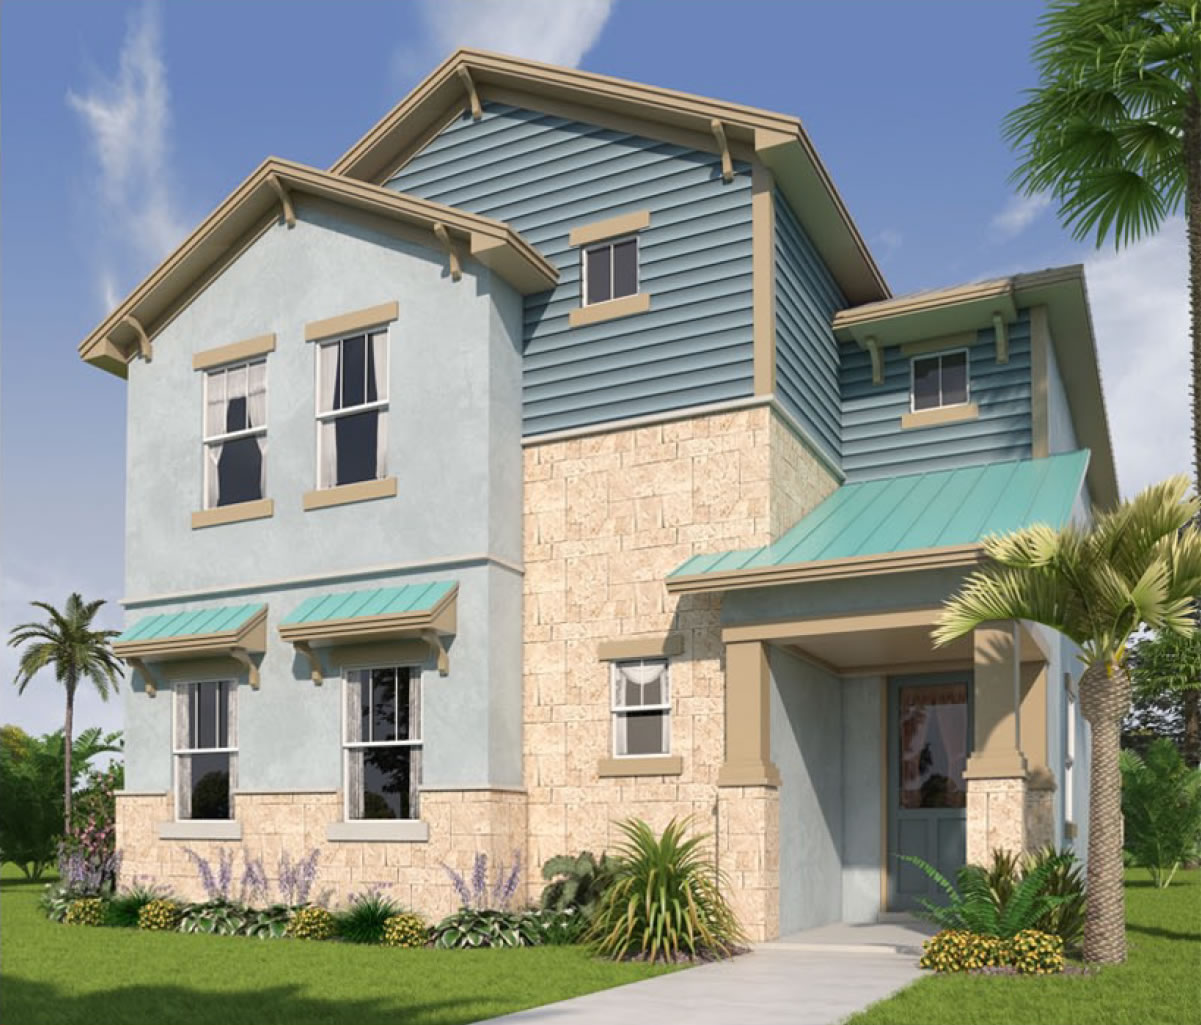 Kissimmee Vacation Homes For Sale: Patriots Landing At Reunion Resort Is A Stunning Upscale